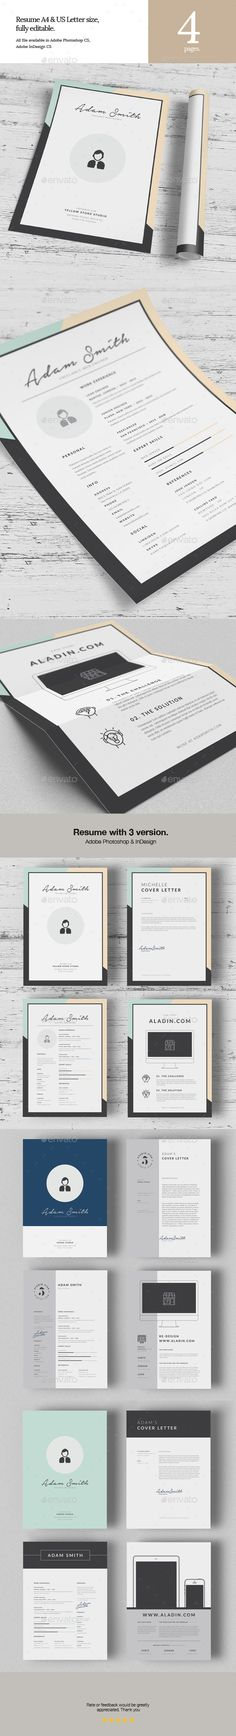 Resume — Photoshop PSD #modern #curriculum vitae • Available here → https://graphicriver.net/item/resume/16862813?ref=pxcr